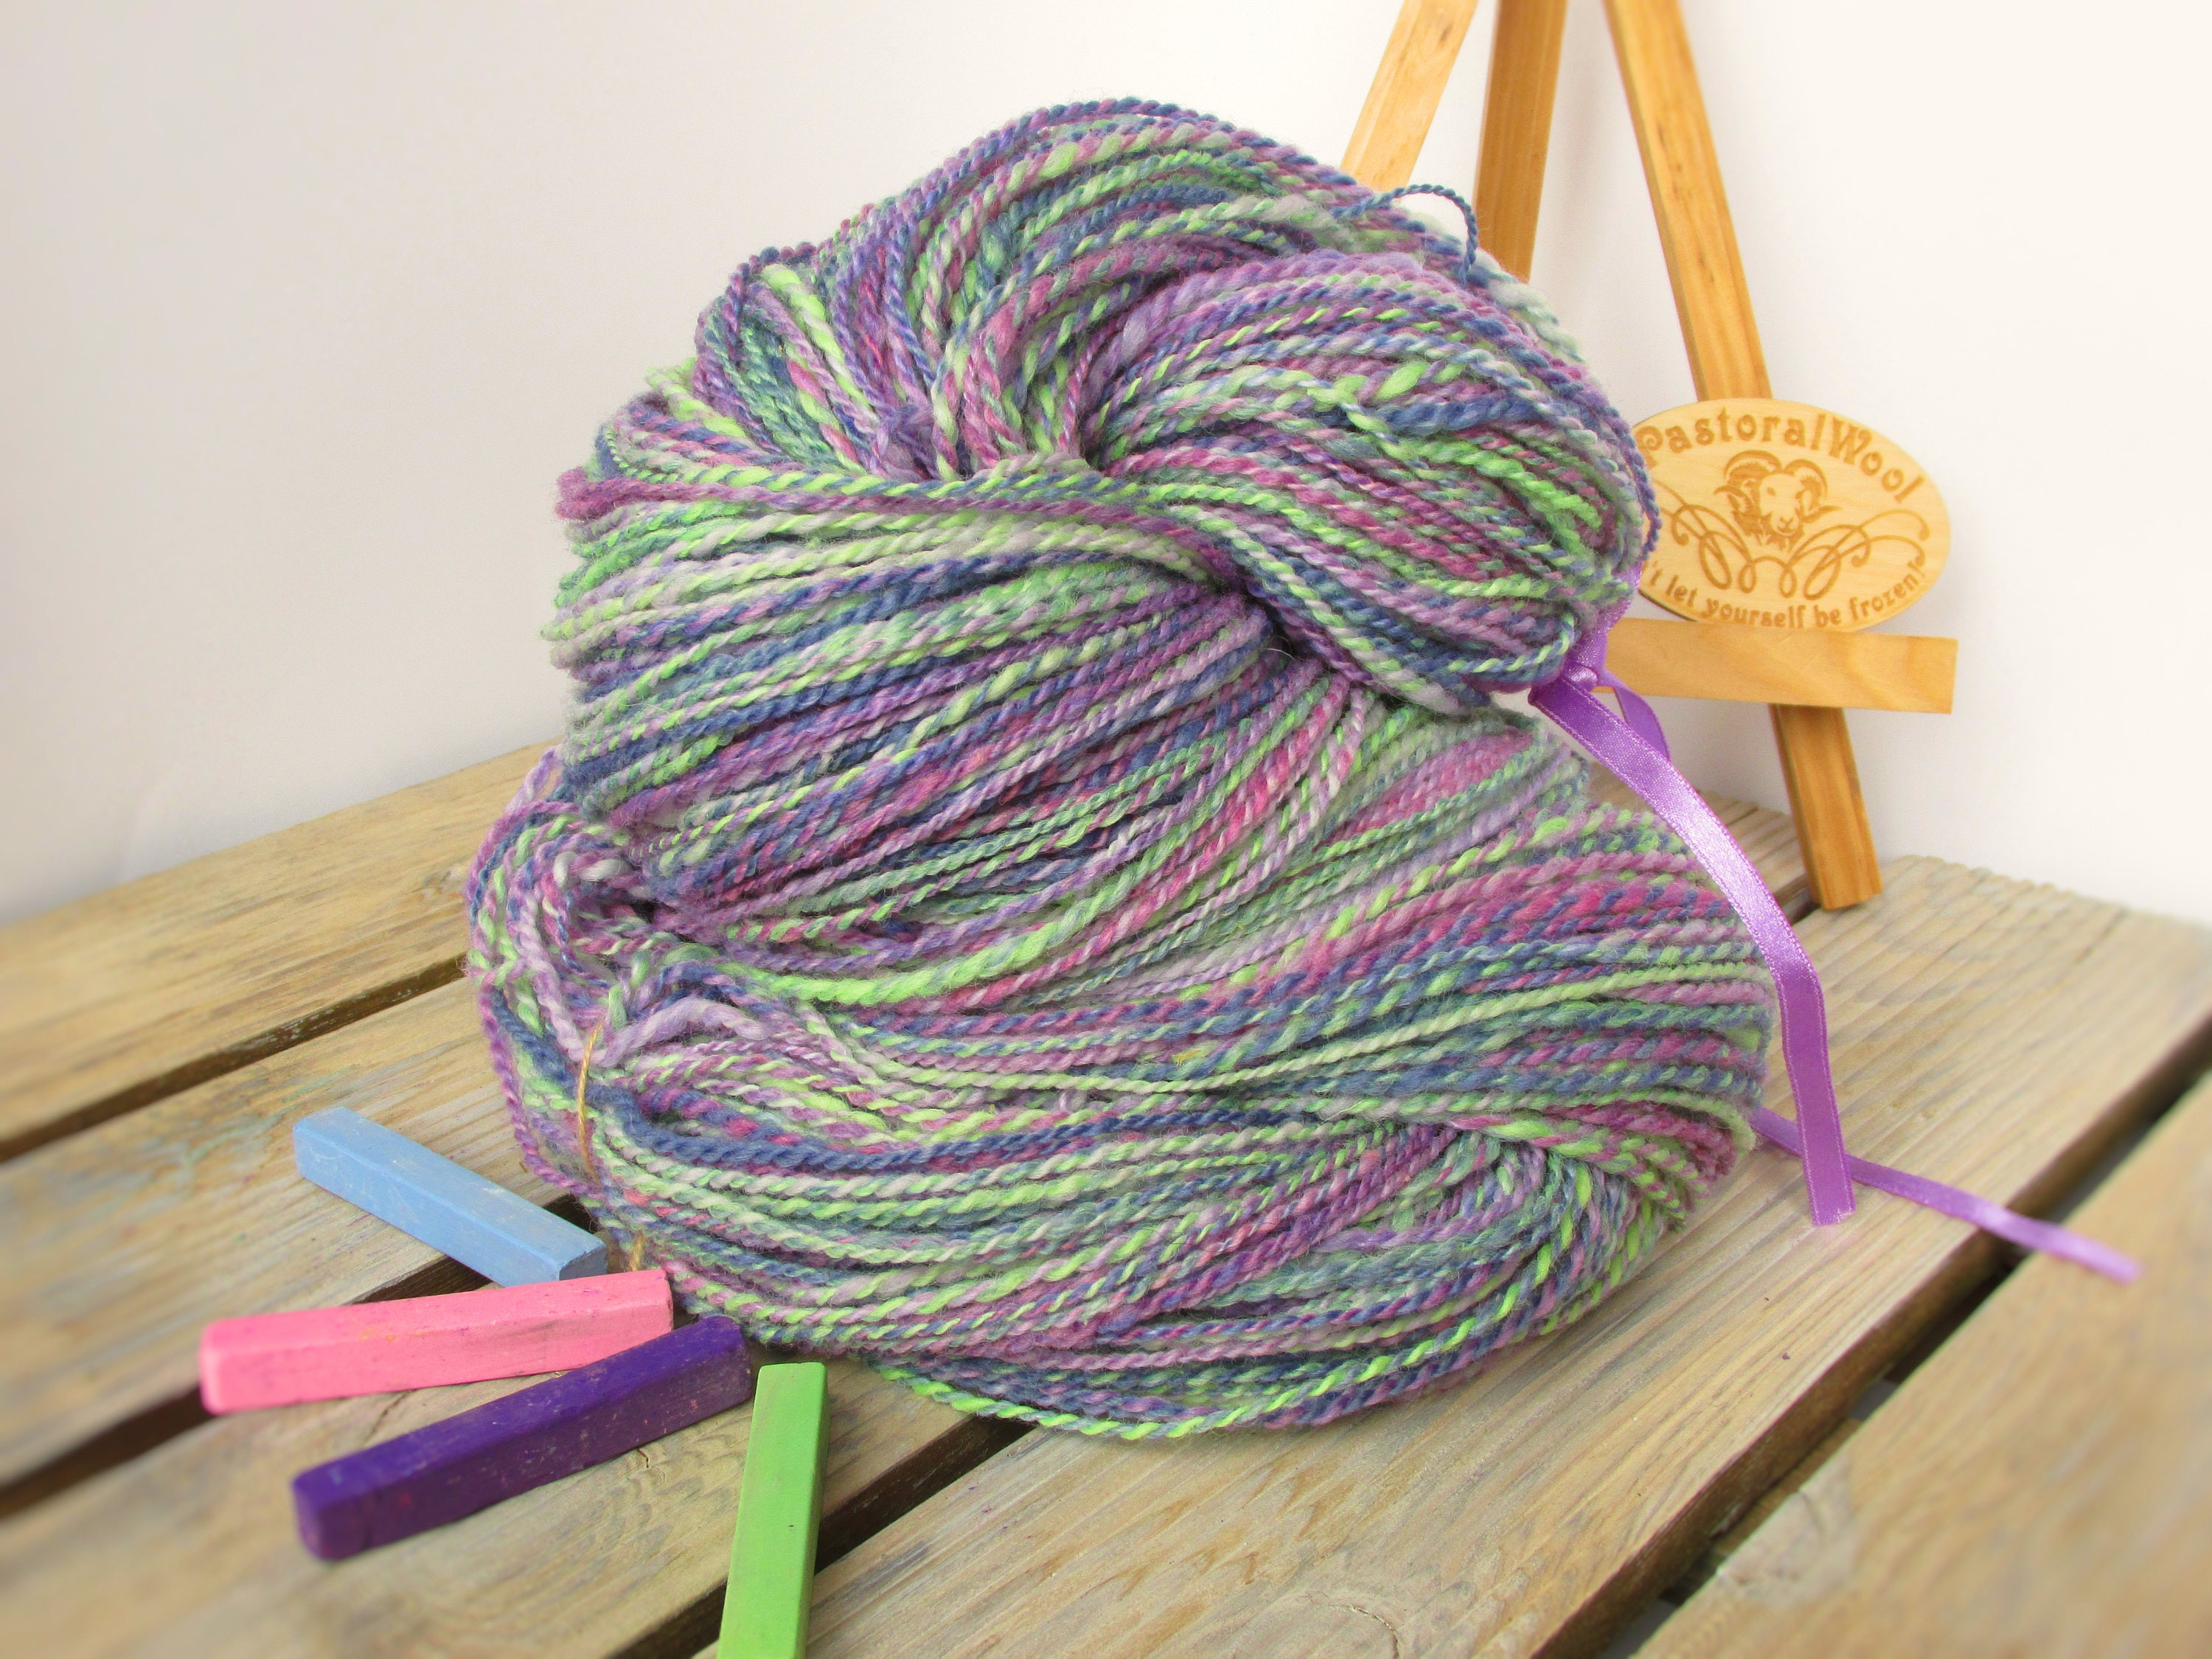 Knitting Handspun Yarn : Handspun yarn knitting wool hand dyed lila